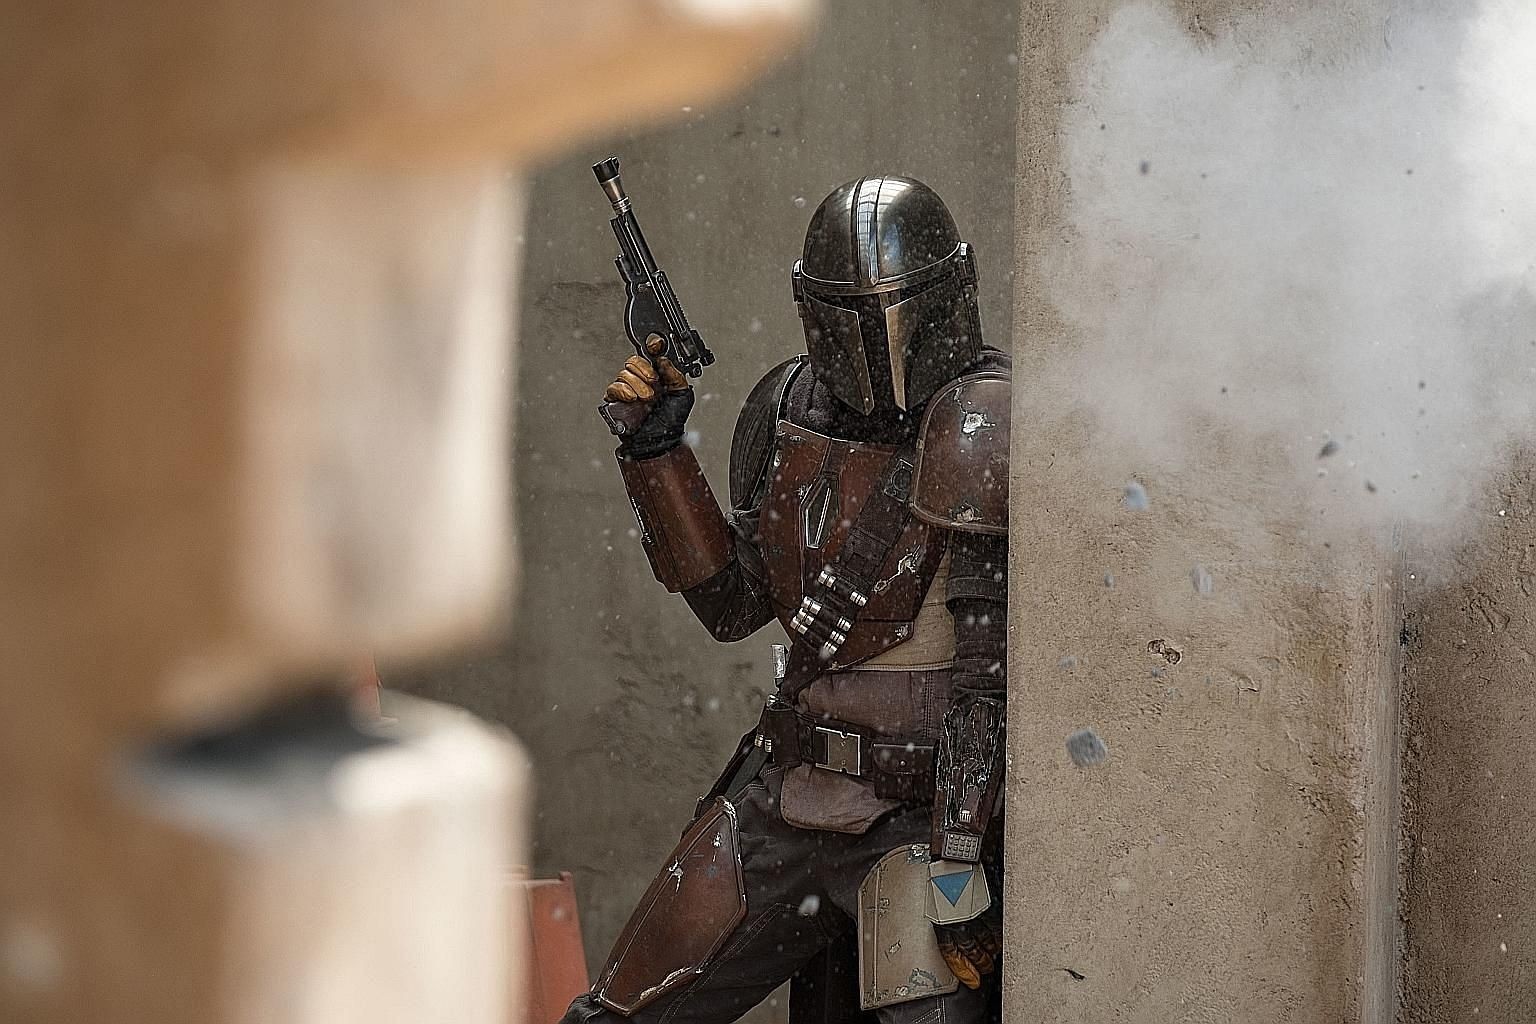 Actor Pedro Pascal plays the title character in Disney+'s new Star Wars TV show, The Mandalorian.